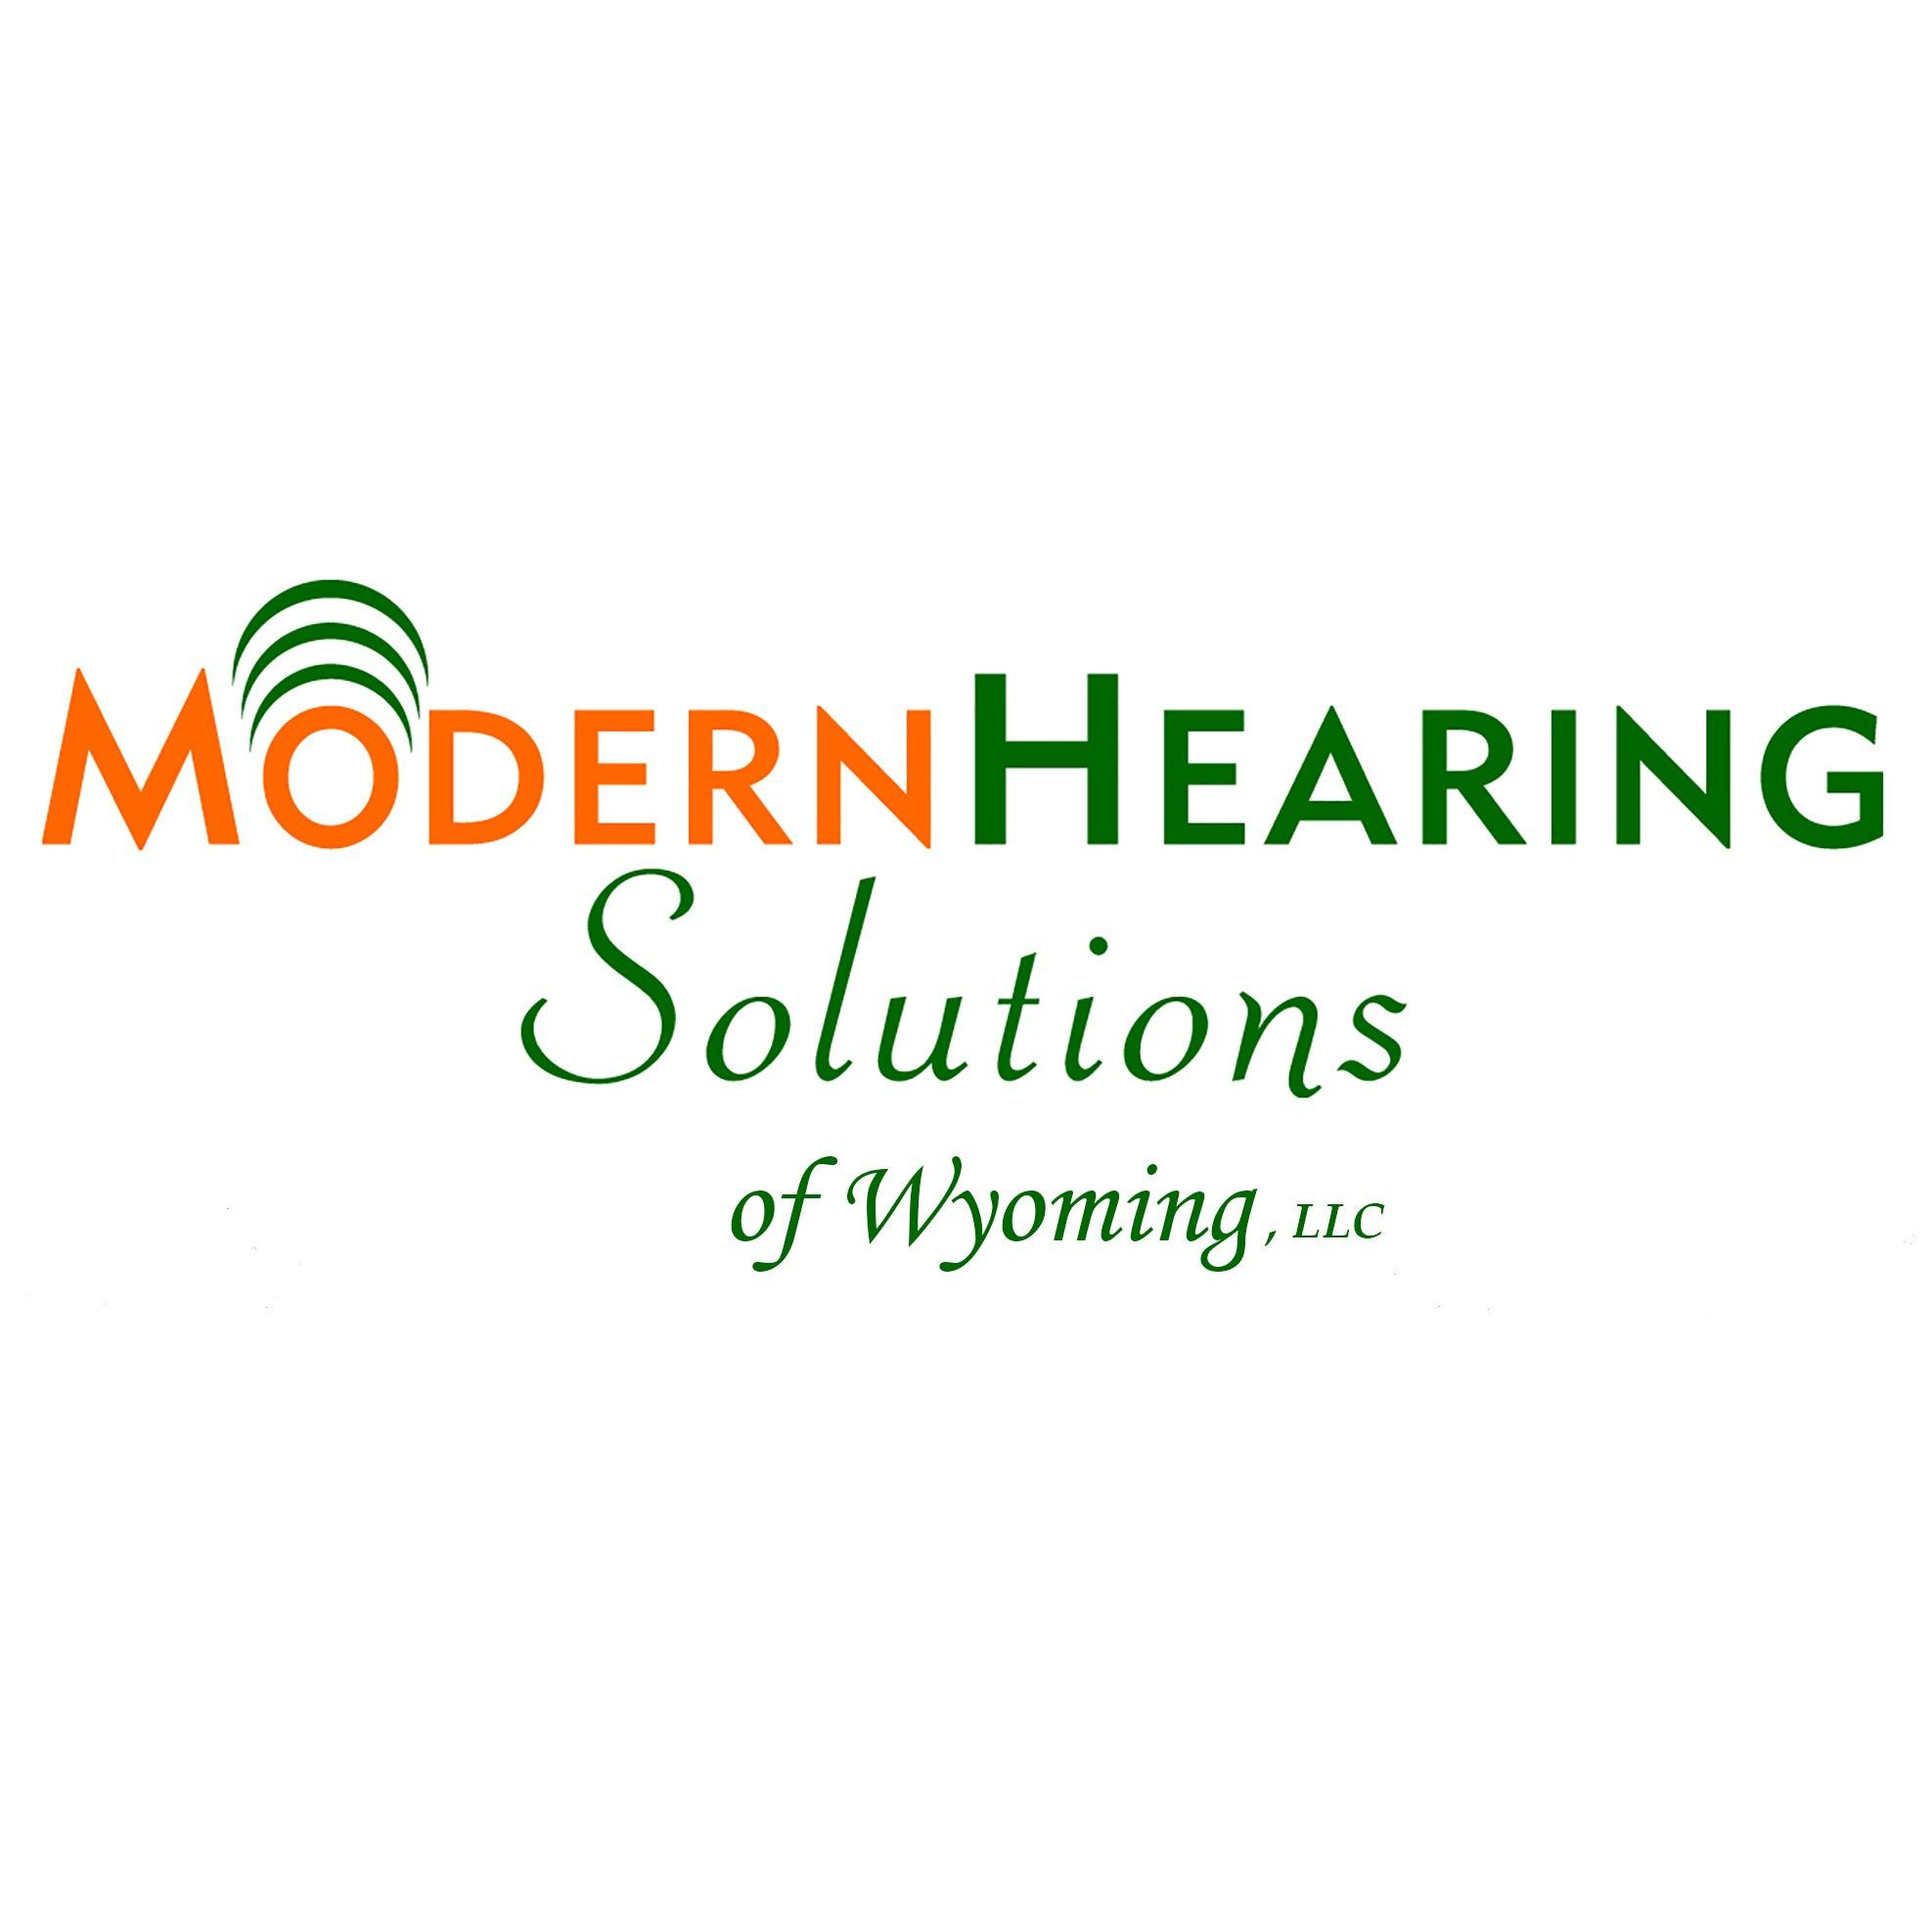 Modern Hearing Solutions of Wyoming